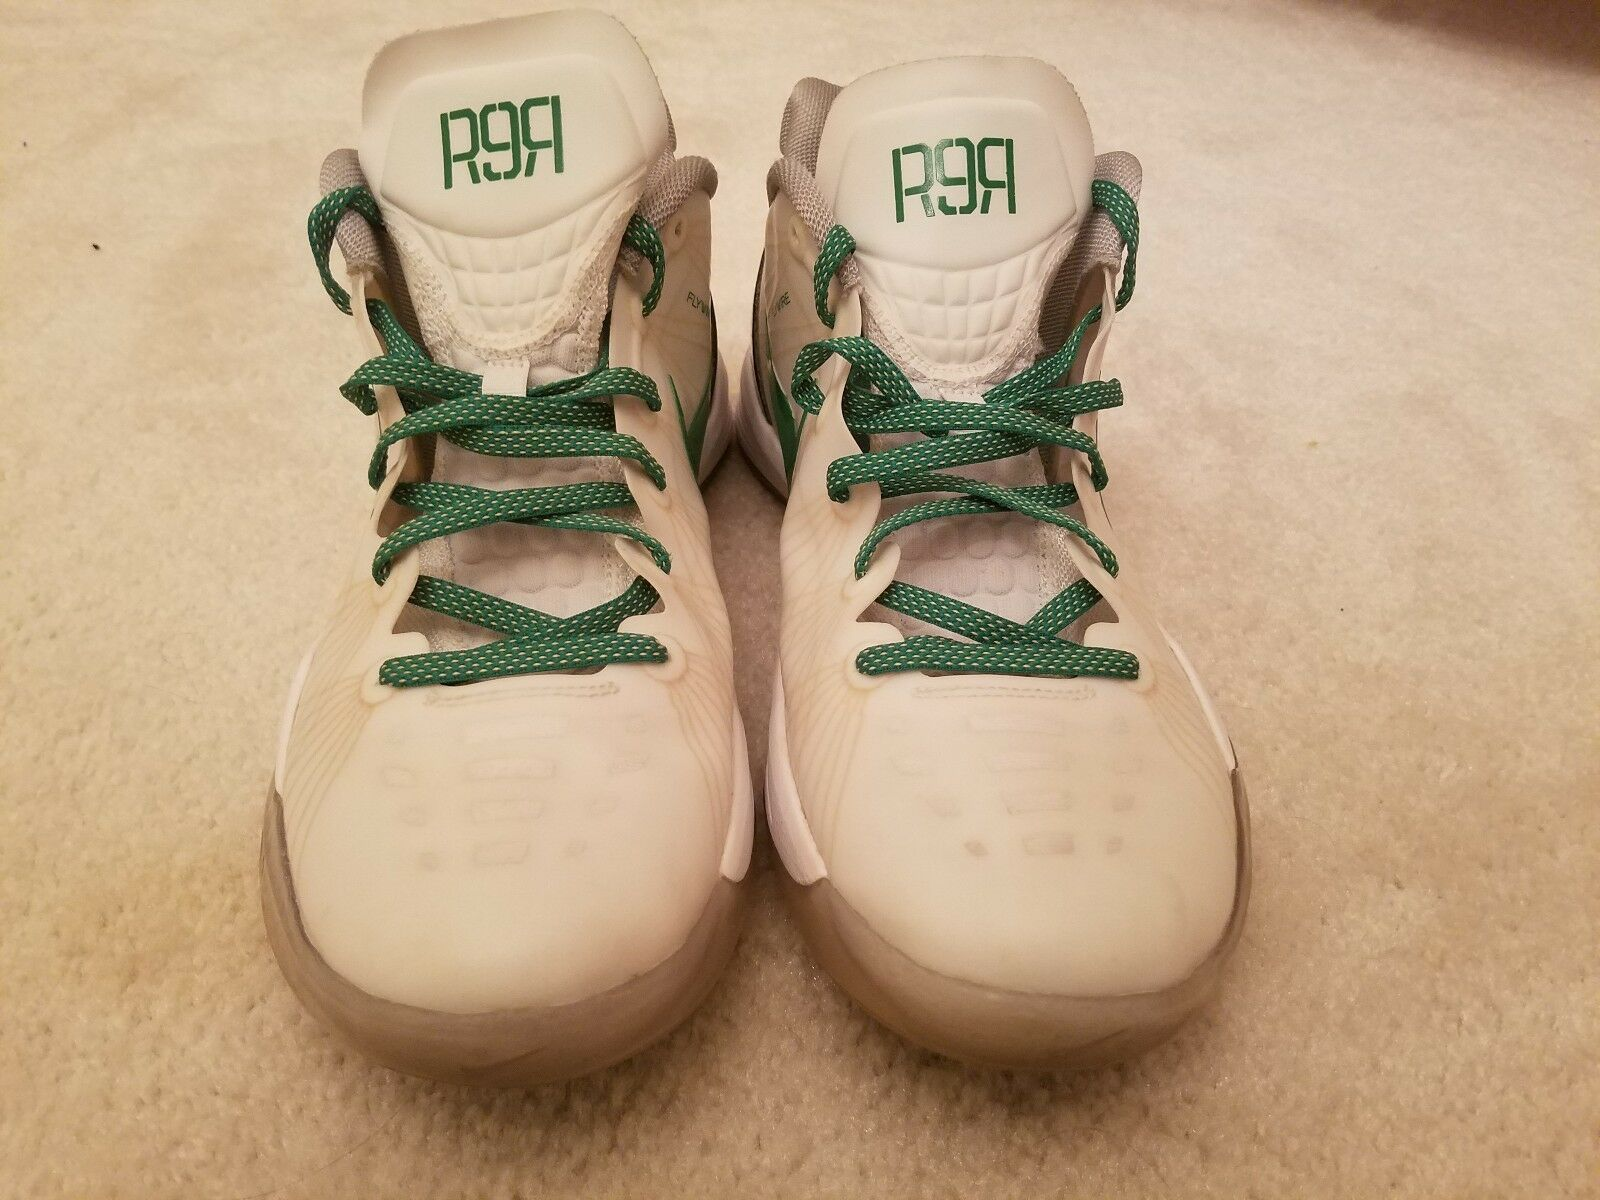 Nike Hyperdunk low 2011 pe Rajon Rondo Promo Sample Y3 ...only pair on ebay